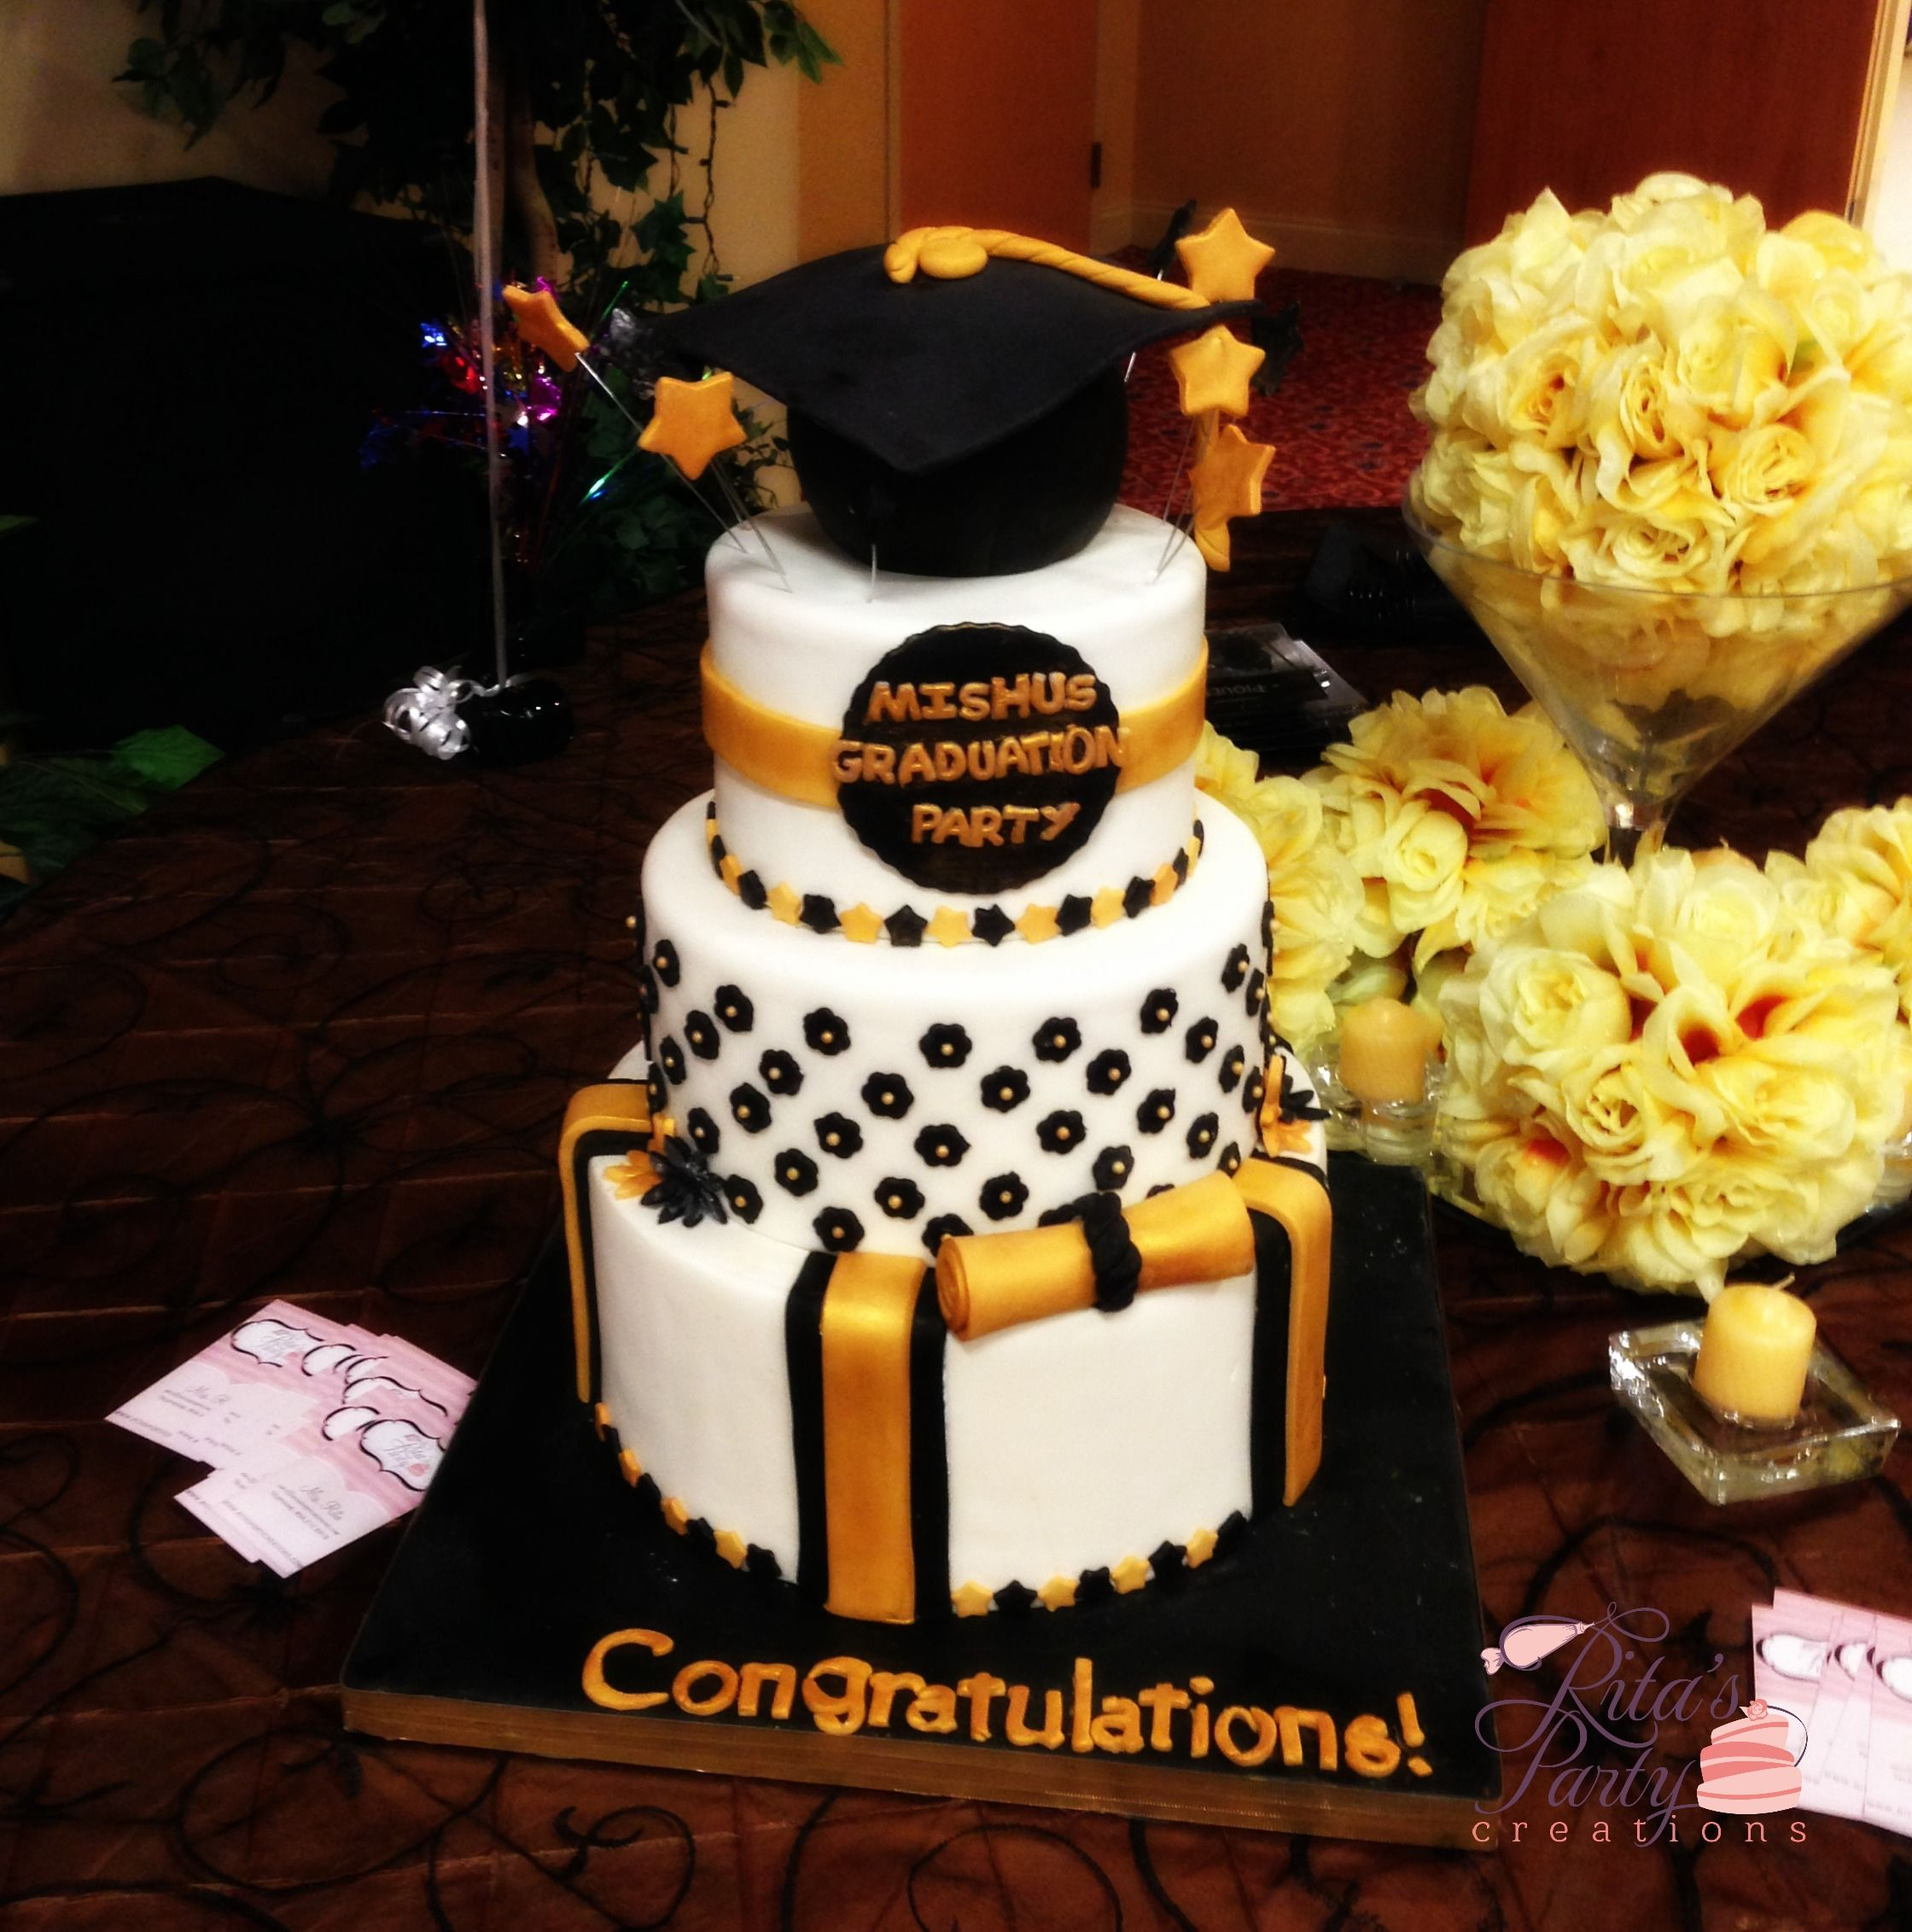 VCU Graduation Party Cake | Rita's Party Creations Cakes | Pinterest